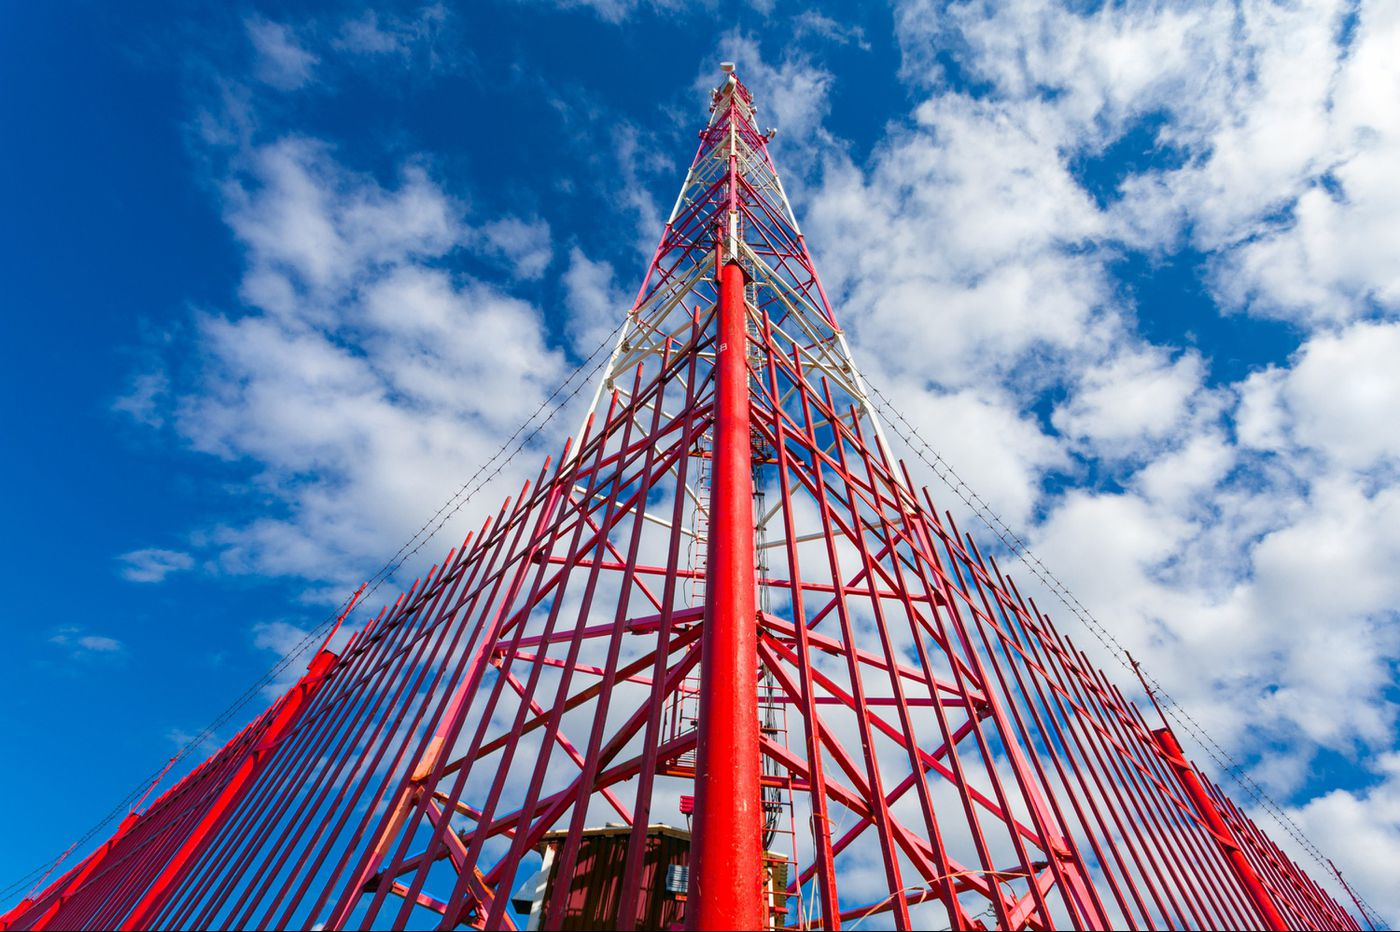 The bill for super-fast 5G service runs out of time in Harrisburg